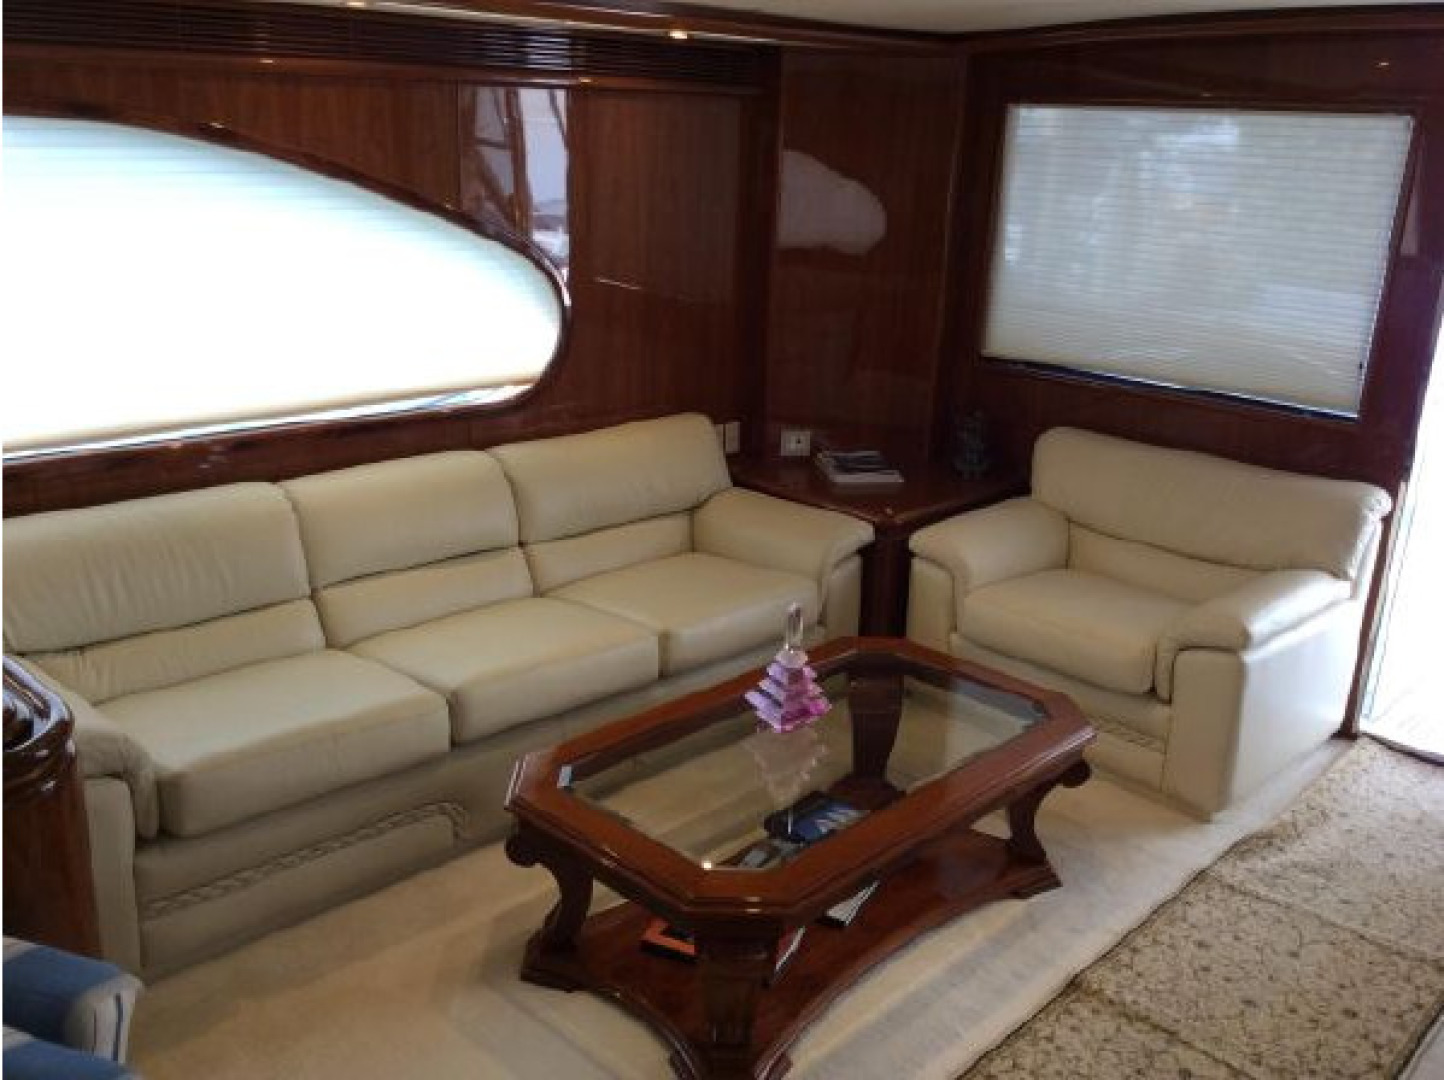 Tarrab-Tri Deck Motor yacht 1990 -Fort Lauderdale-Florida-United States-1551612 | Thumbnail